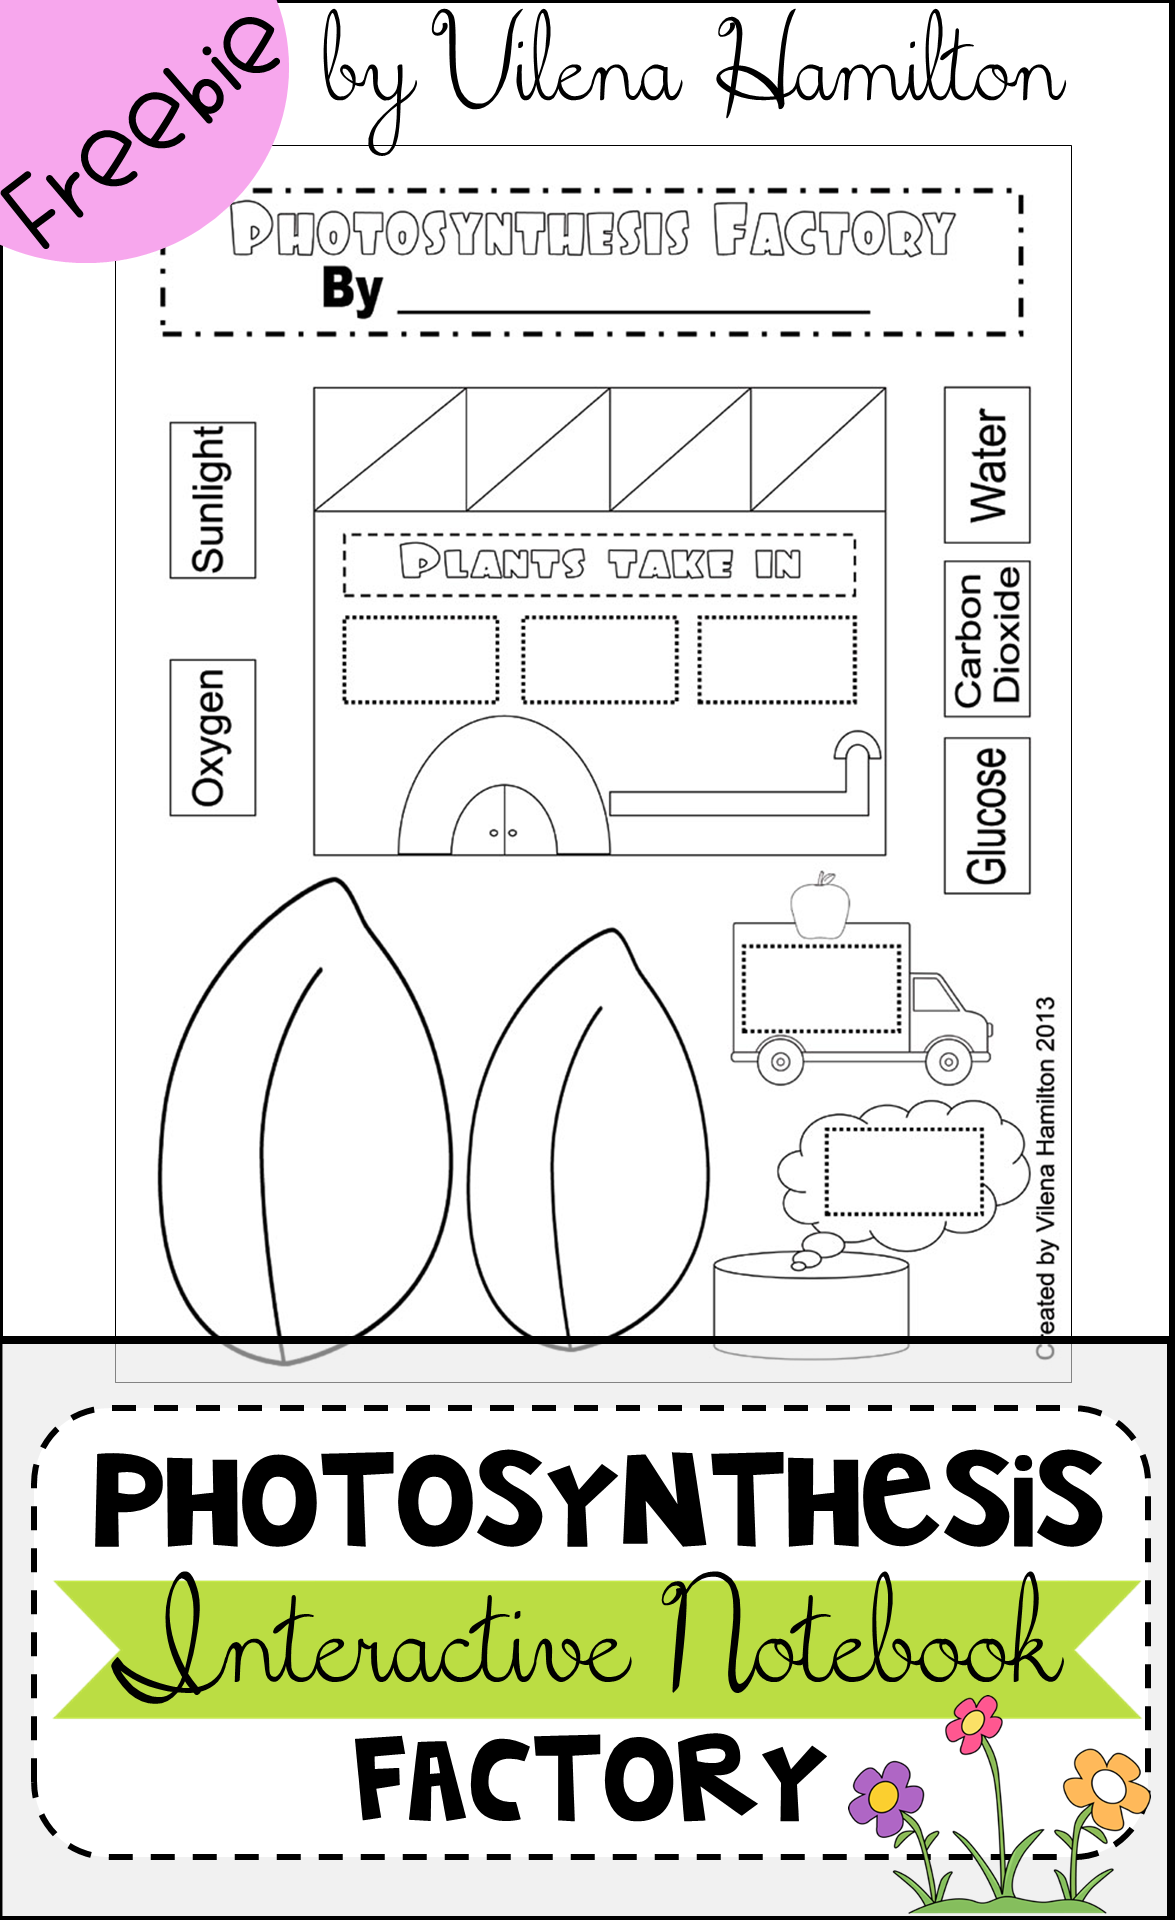 Free Photosynthesis Factory Craftivity